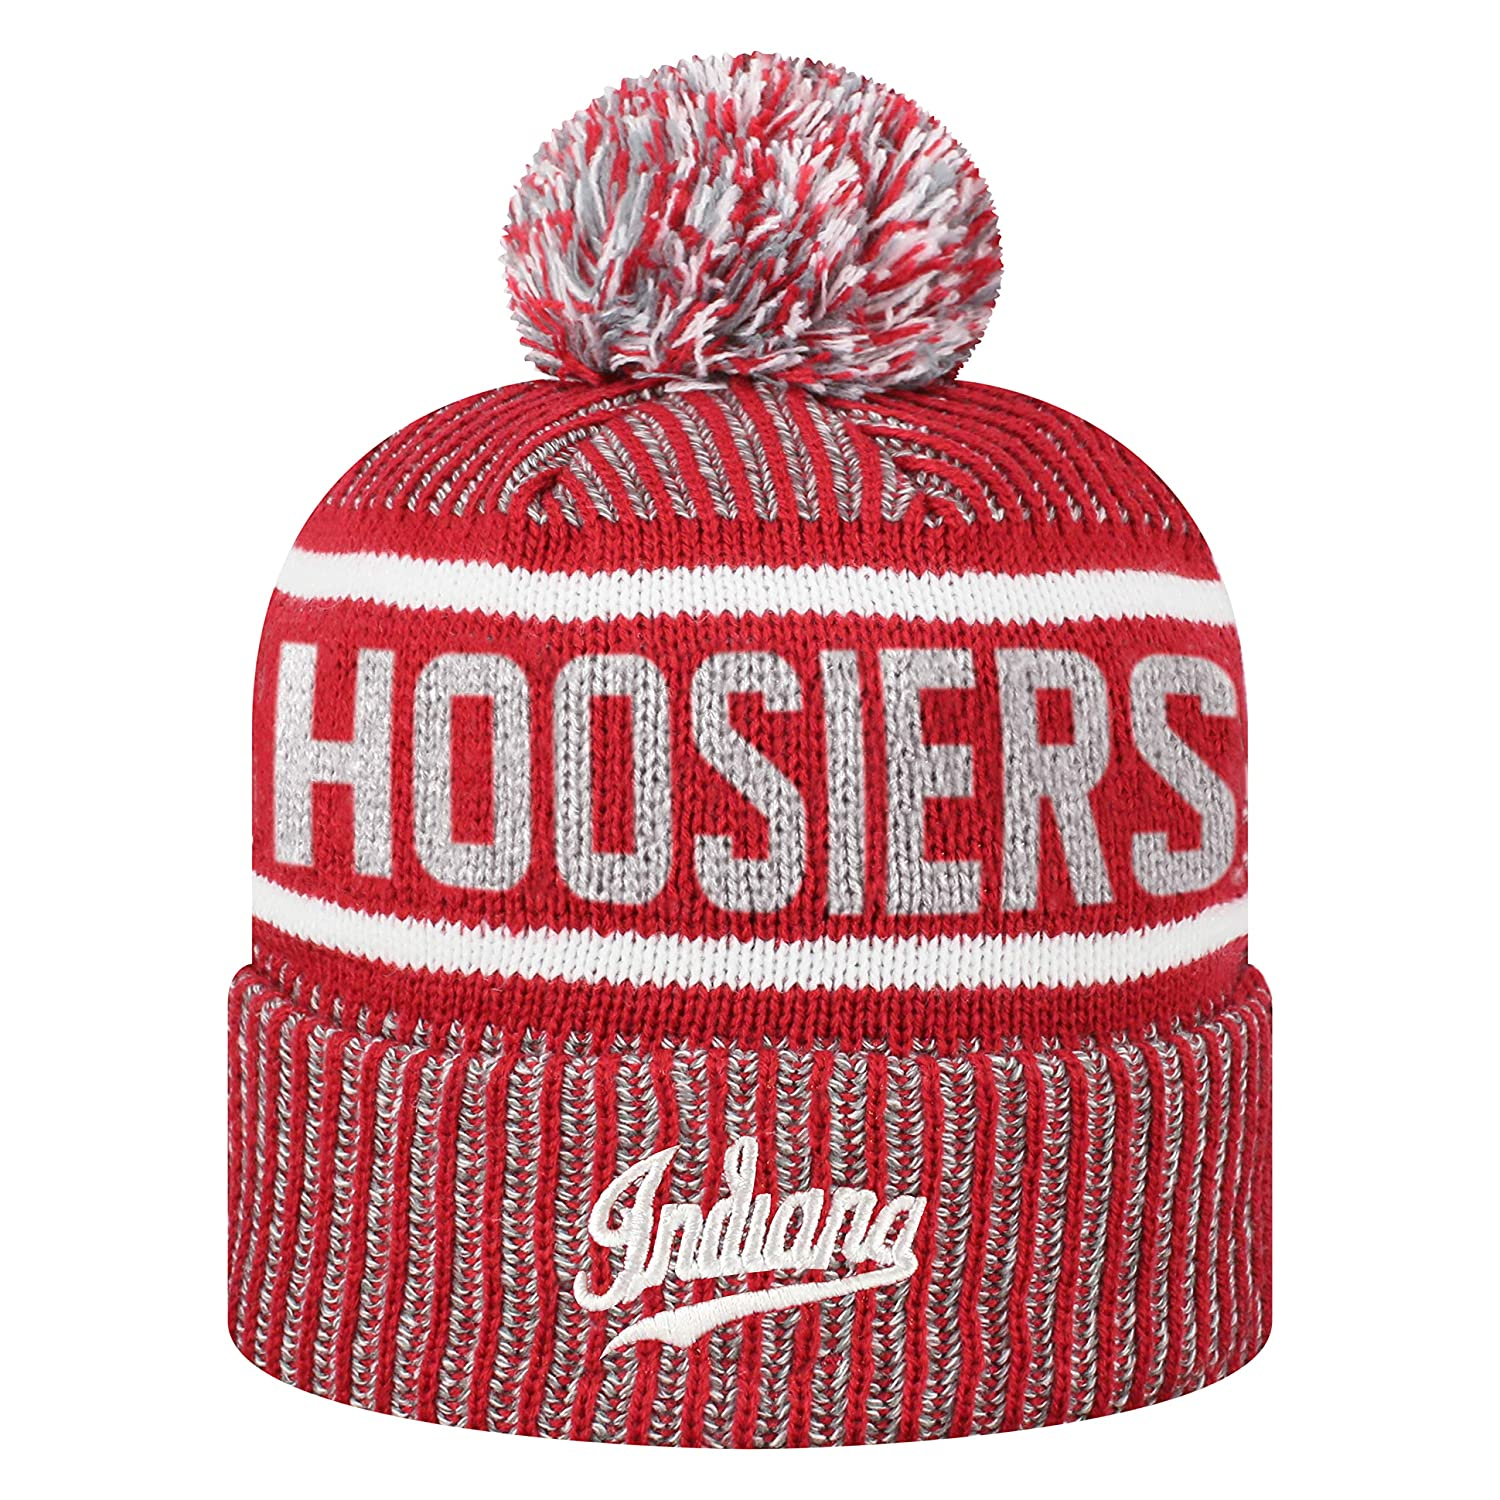 229a56544928e6 Amazon.com : Top of the World NCAA Glacier Cuffed Knit Beanie Pom Hat-Auburn  Tigers : Sports & Outdoors